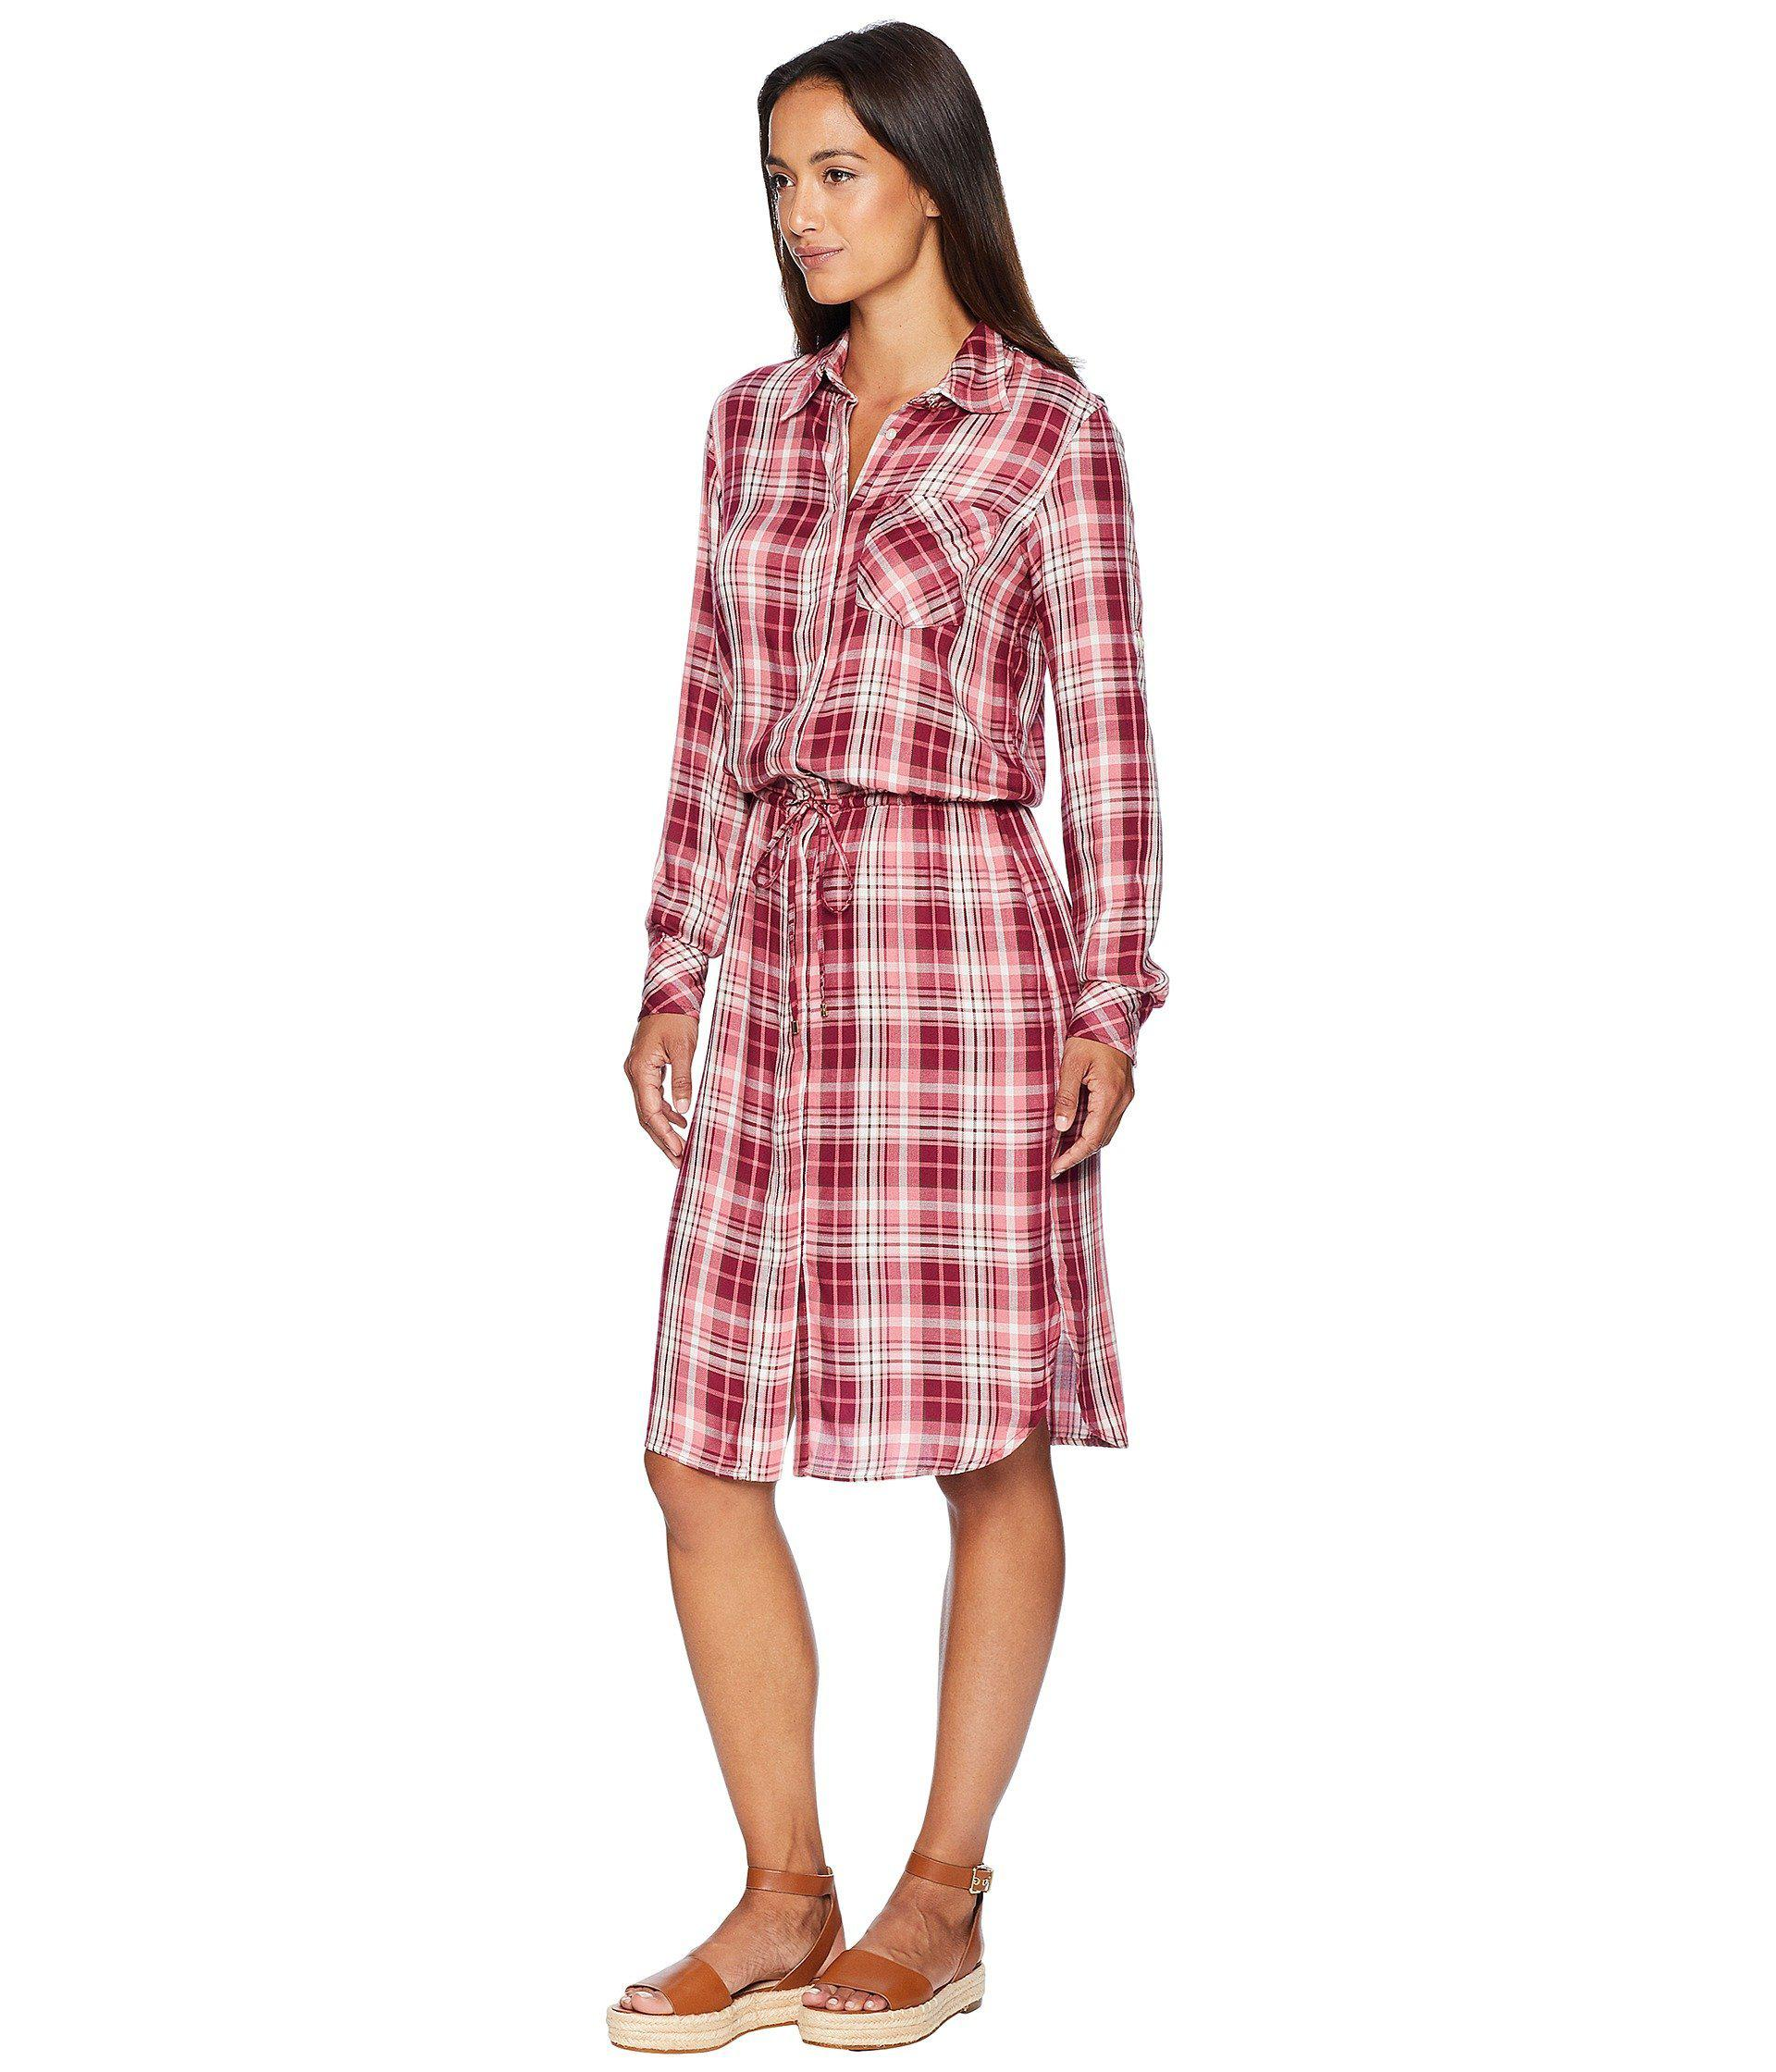 eb3ed7a4c094 Lyst - Lauren by Ralph Lauren Plaid Drawstring Shirtdress (red Multi)  Women s Dress in Red